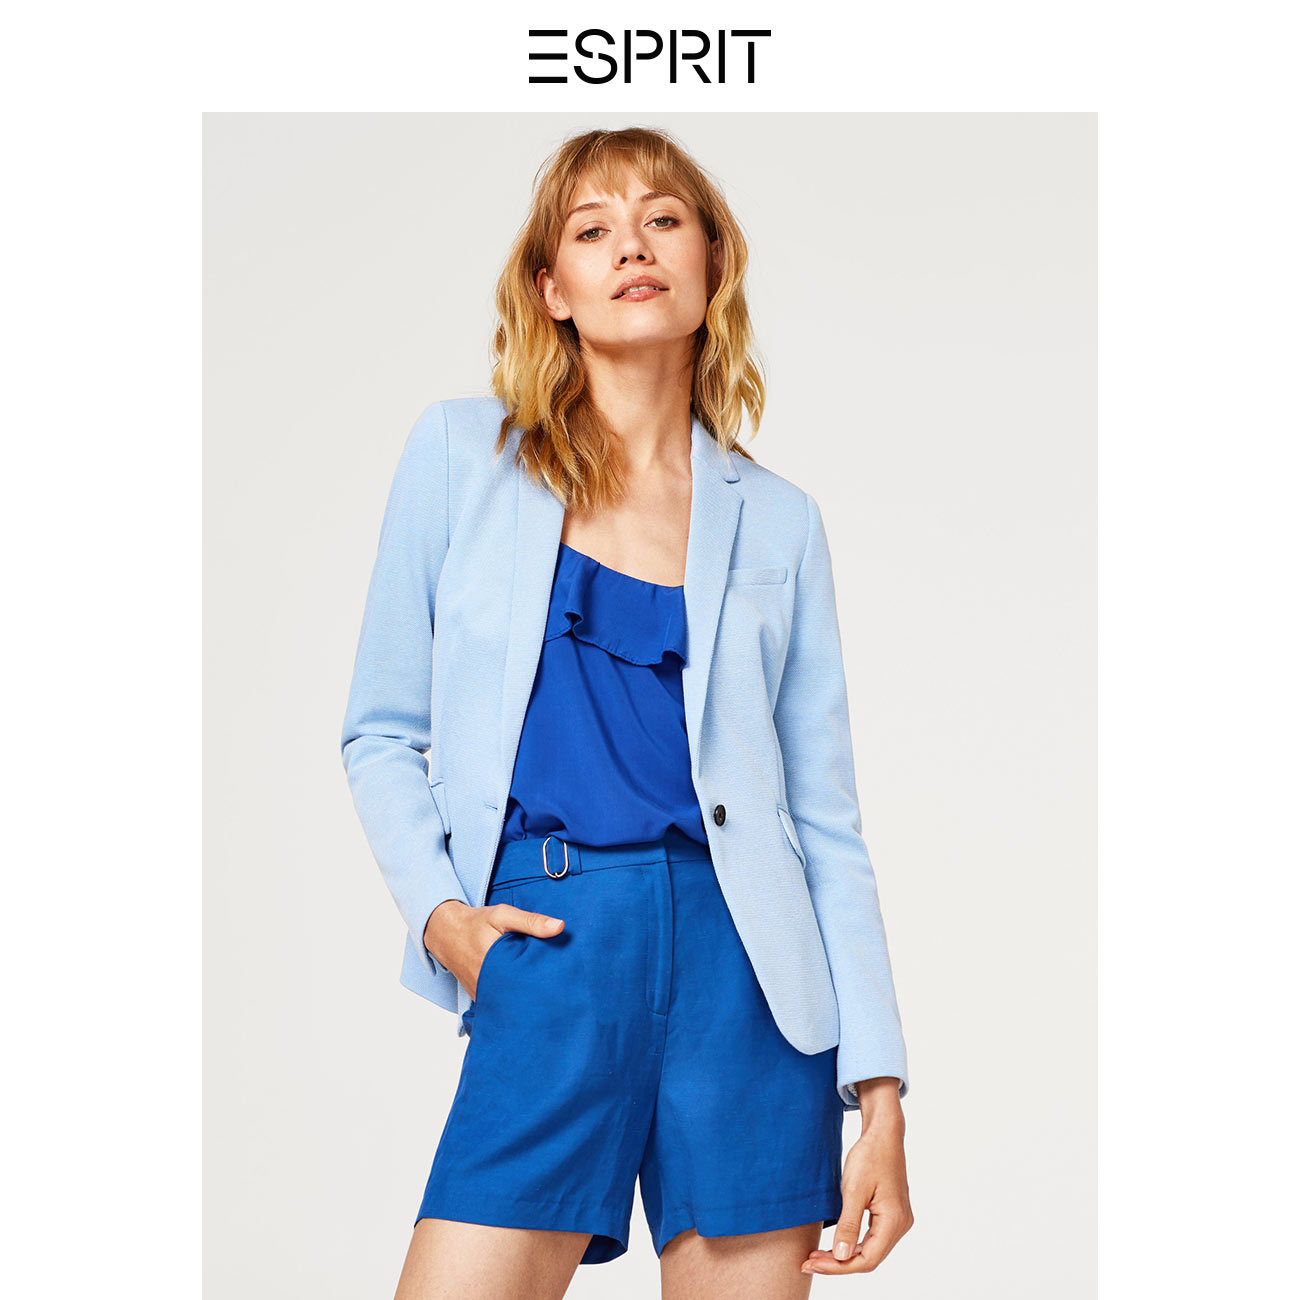 6481ff3ca41 ESPRIT women s summer solid color fashion simple buckle business casual  suit jacket female-038EO1G002 · Zoom · lightbox moreview · lightbox  moreview ...